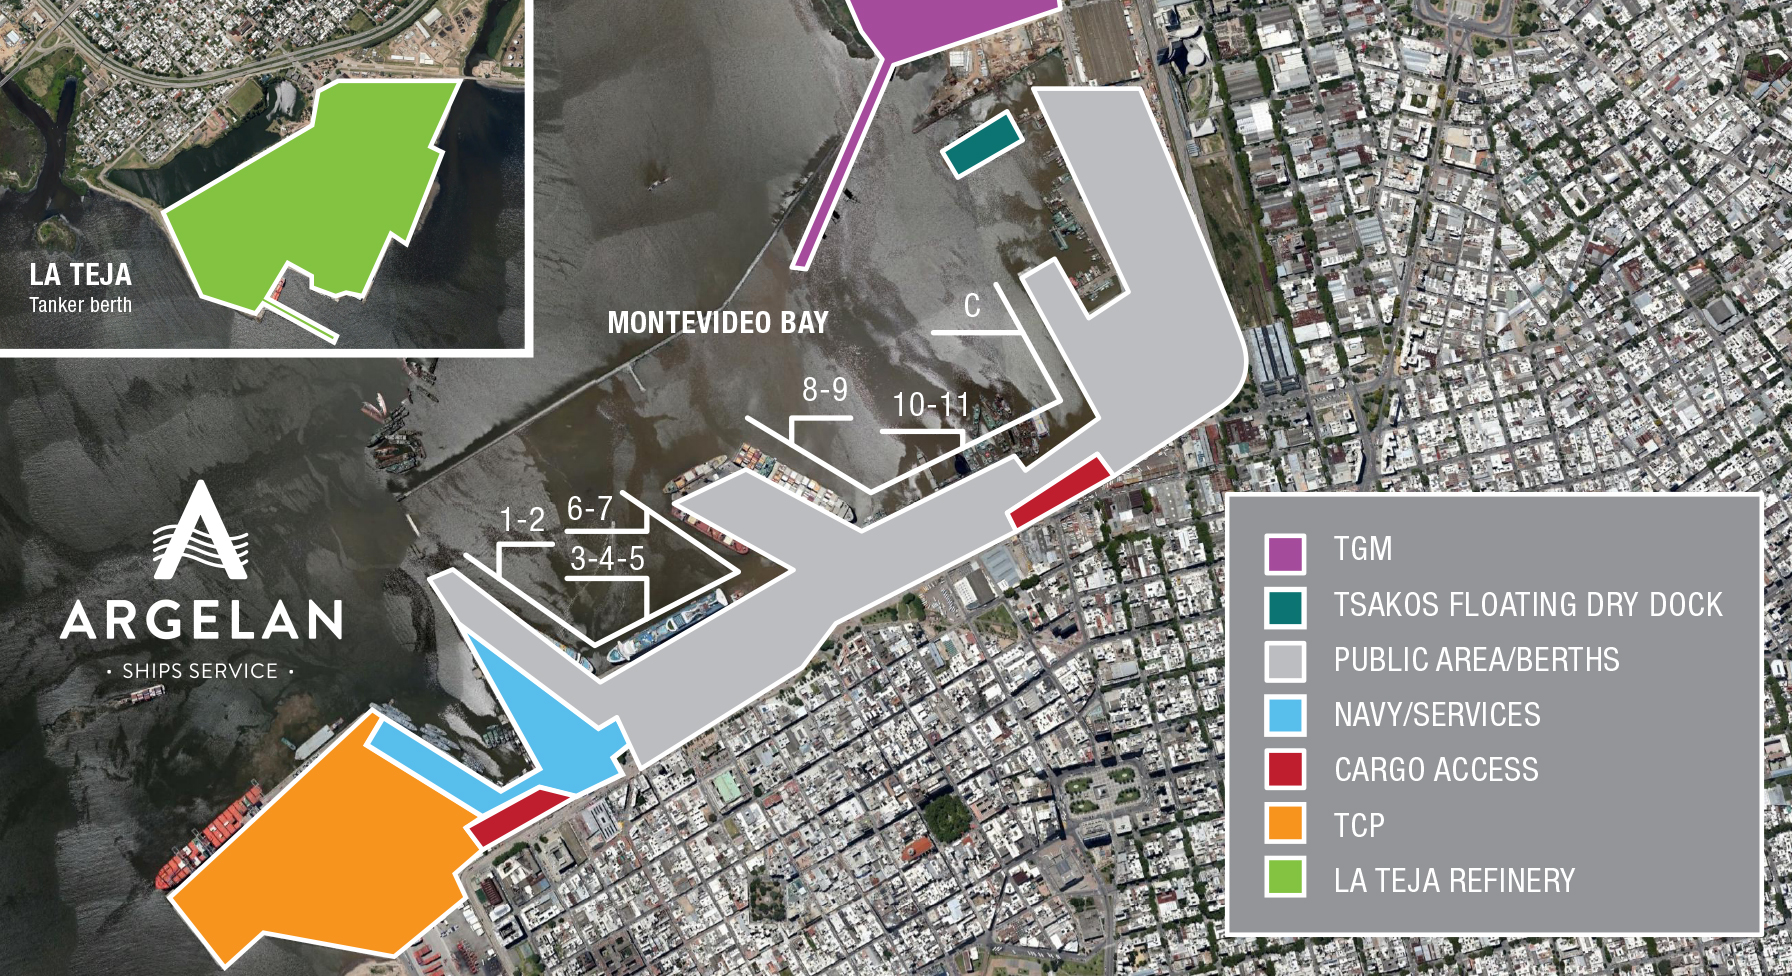 Mapa Montevideo+LaTeja v6